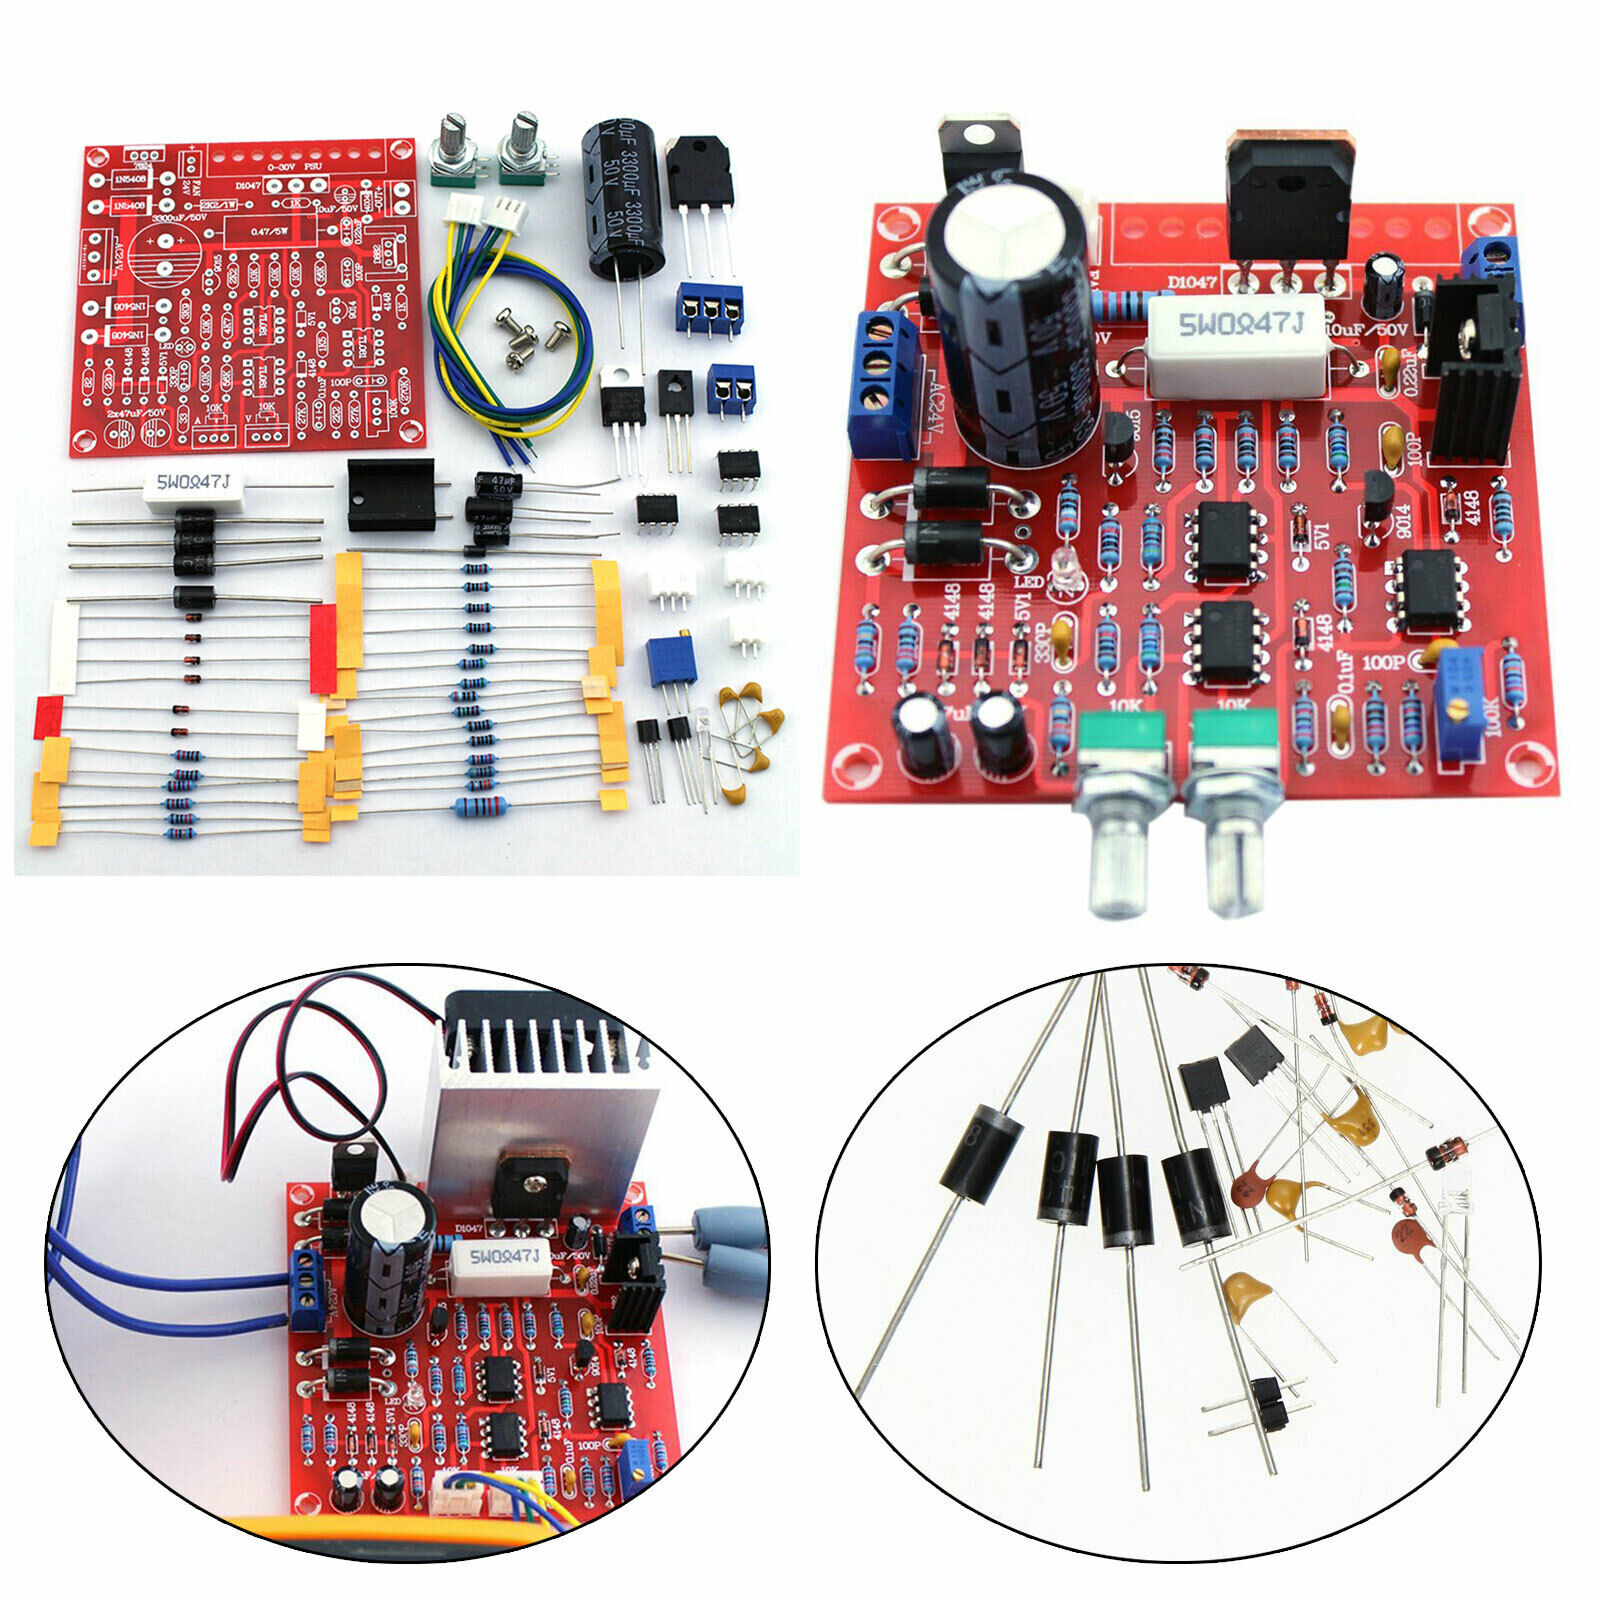 0-30V 2MA-3A Adjustable DC Power Short-circuit Current Limit Protection DIY Kit Bagged